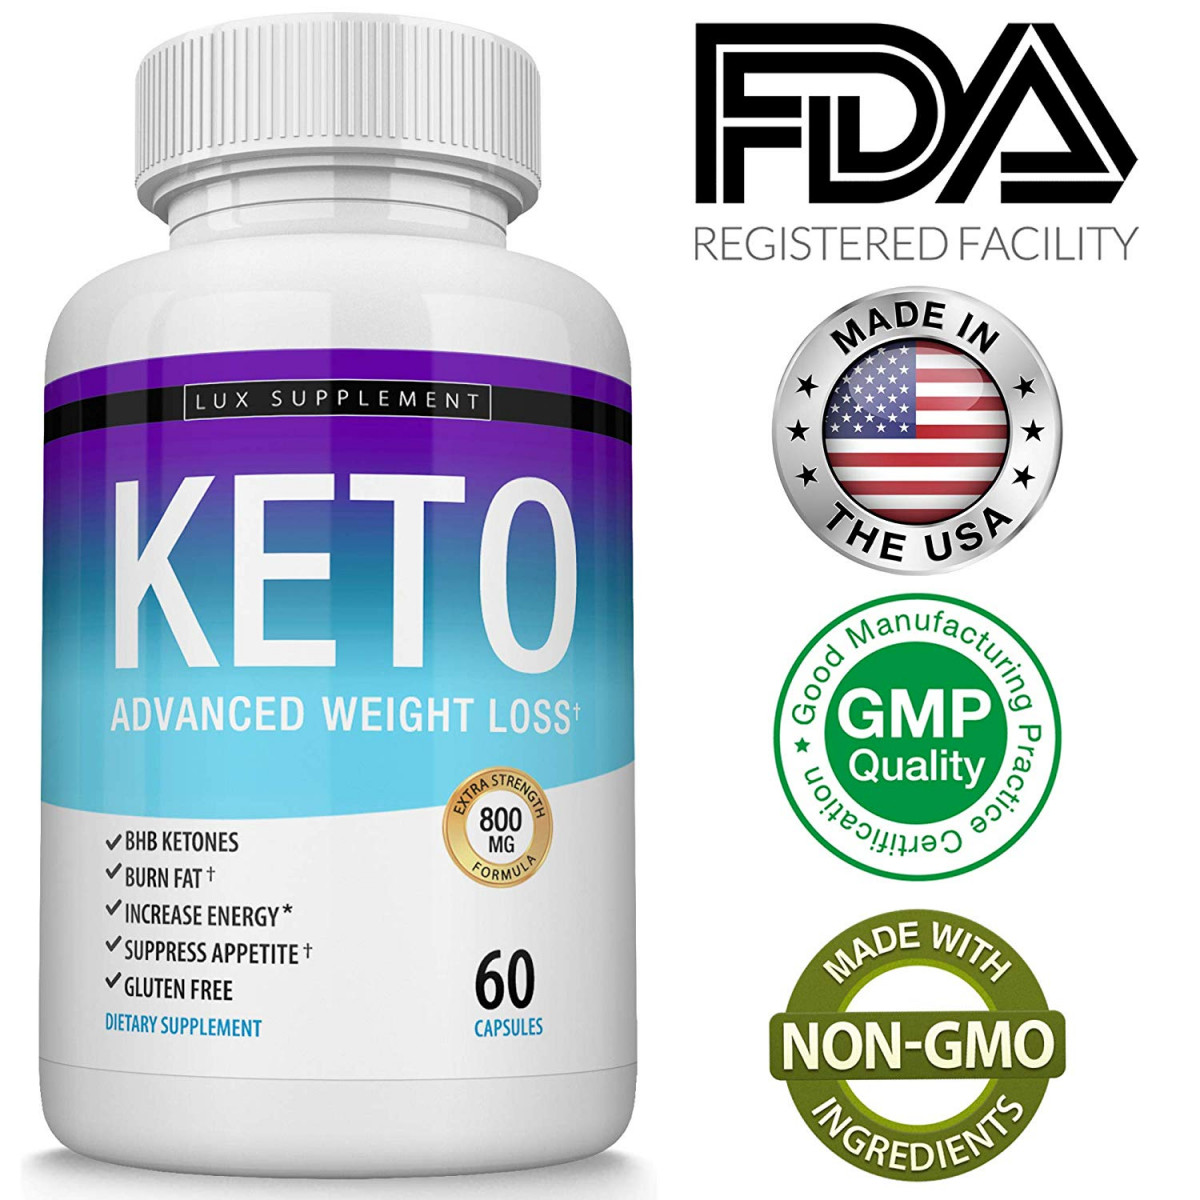 Shark Tank Keto Weight Loss Pills Advanced Bhb Salt Fat Burner Using Ketone And Ketogenic Diet Fast And Effective Ketosis For Men Women Boost